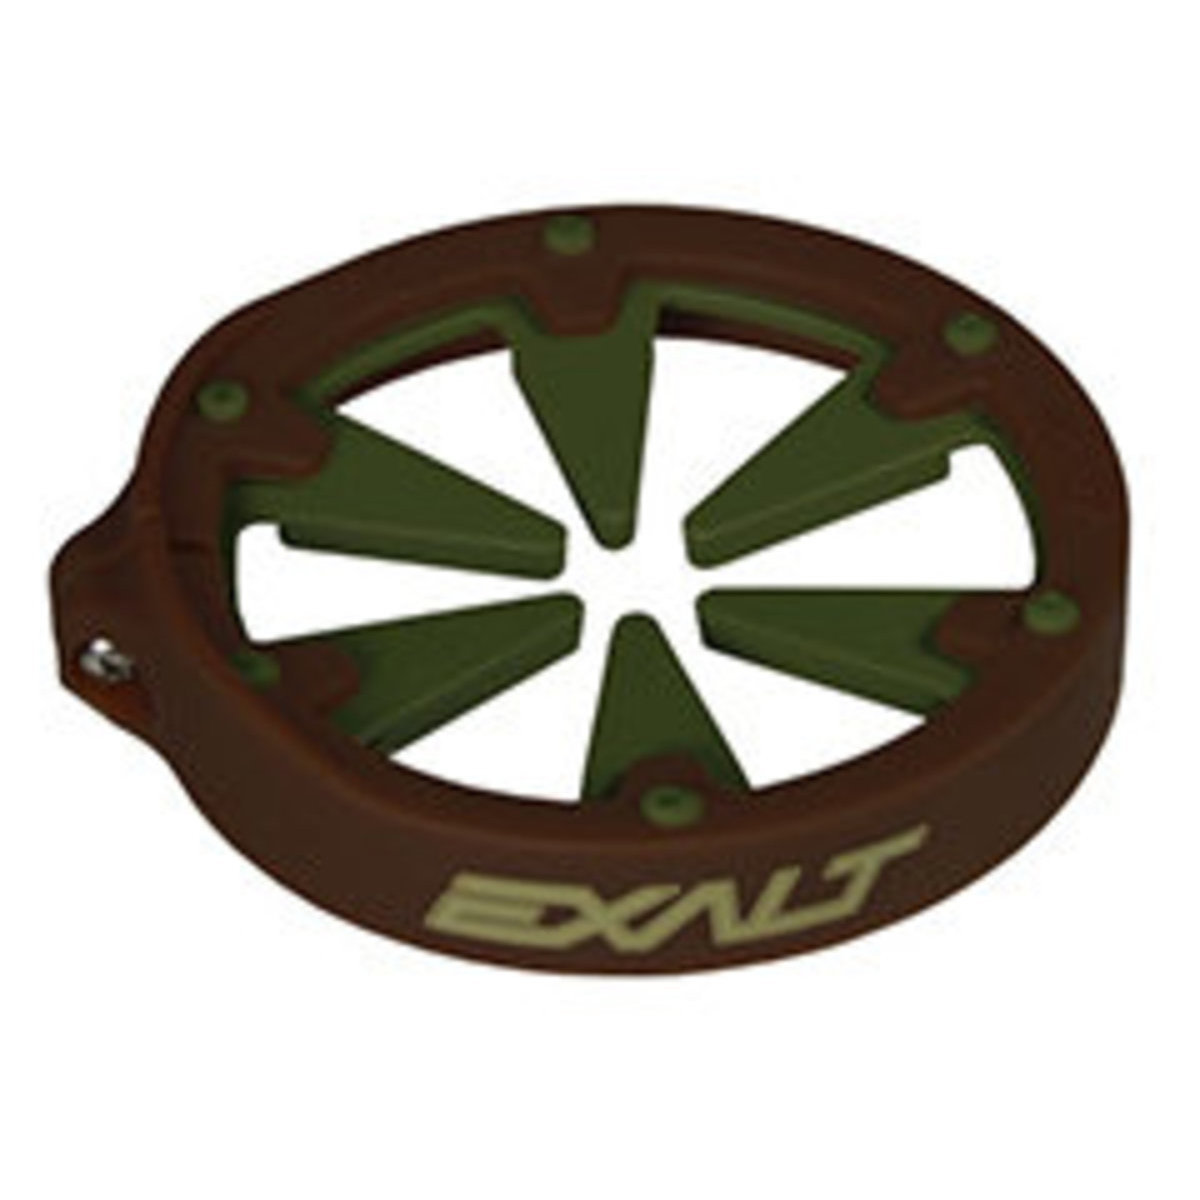 View larger image of Exalt Universal Feedgate Paintball Loader Accessory